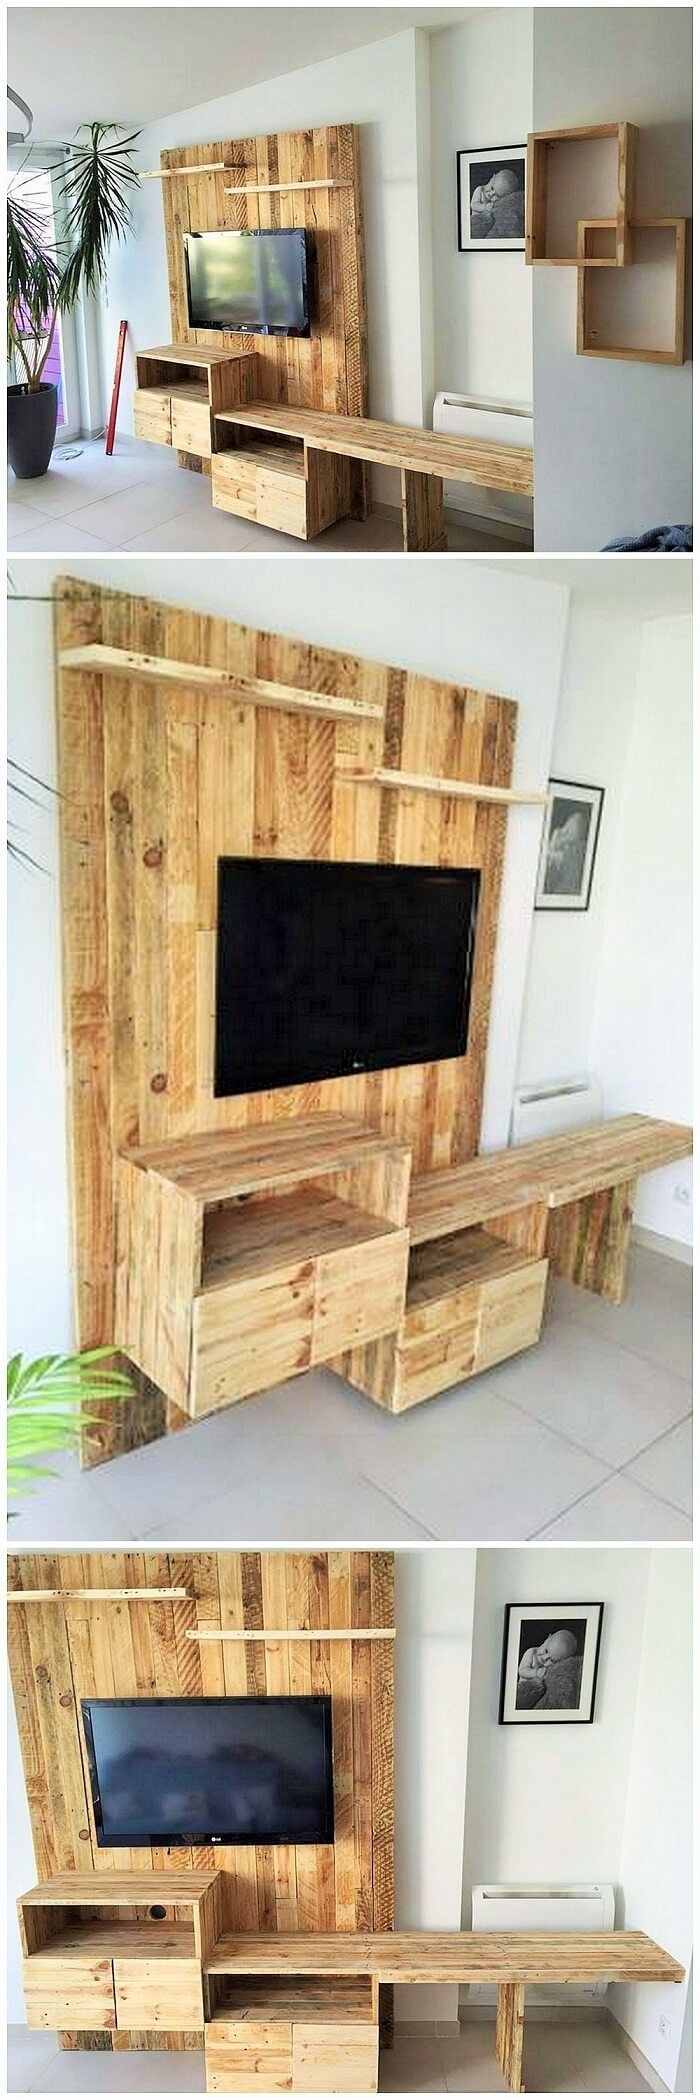 DIY WOOD PALLETS MADE TERRACE PROJECT (14)